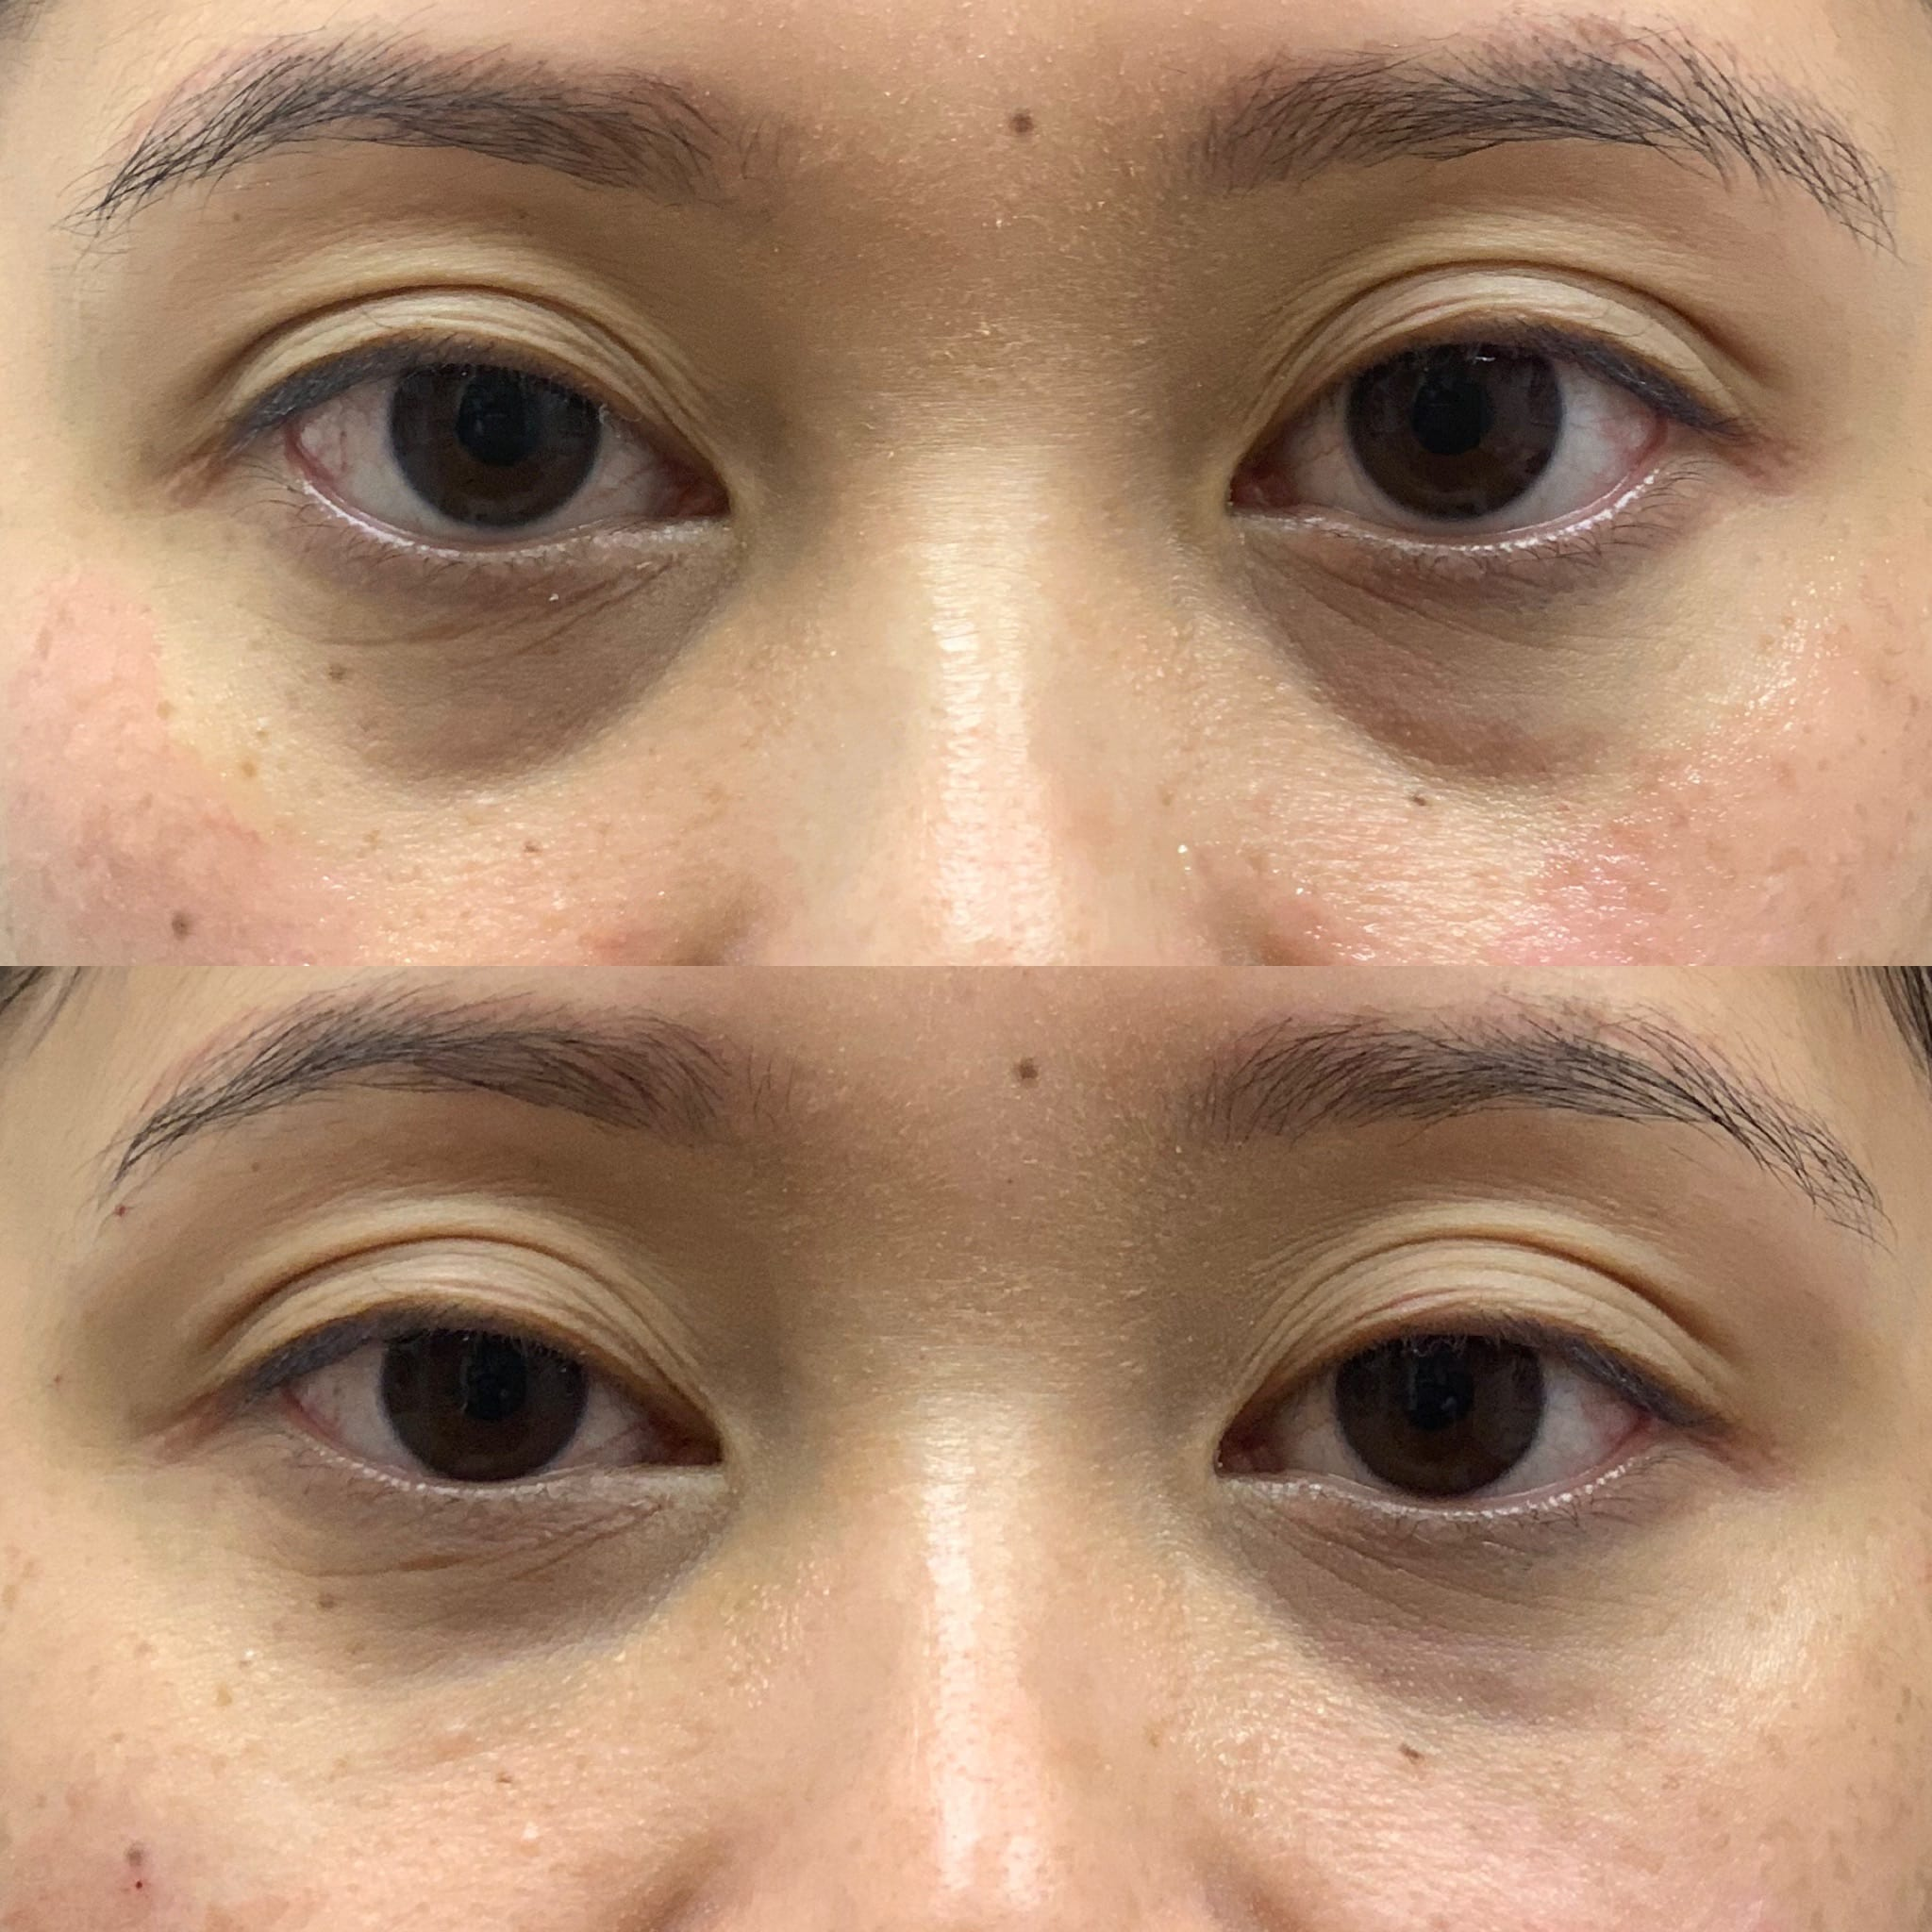 31 y/o Asian F 2 weeks after injecting vollure to her under eye area.